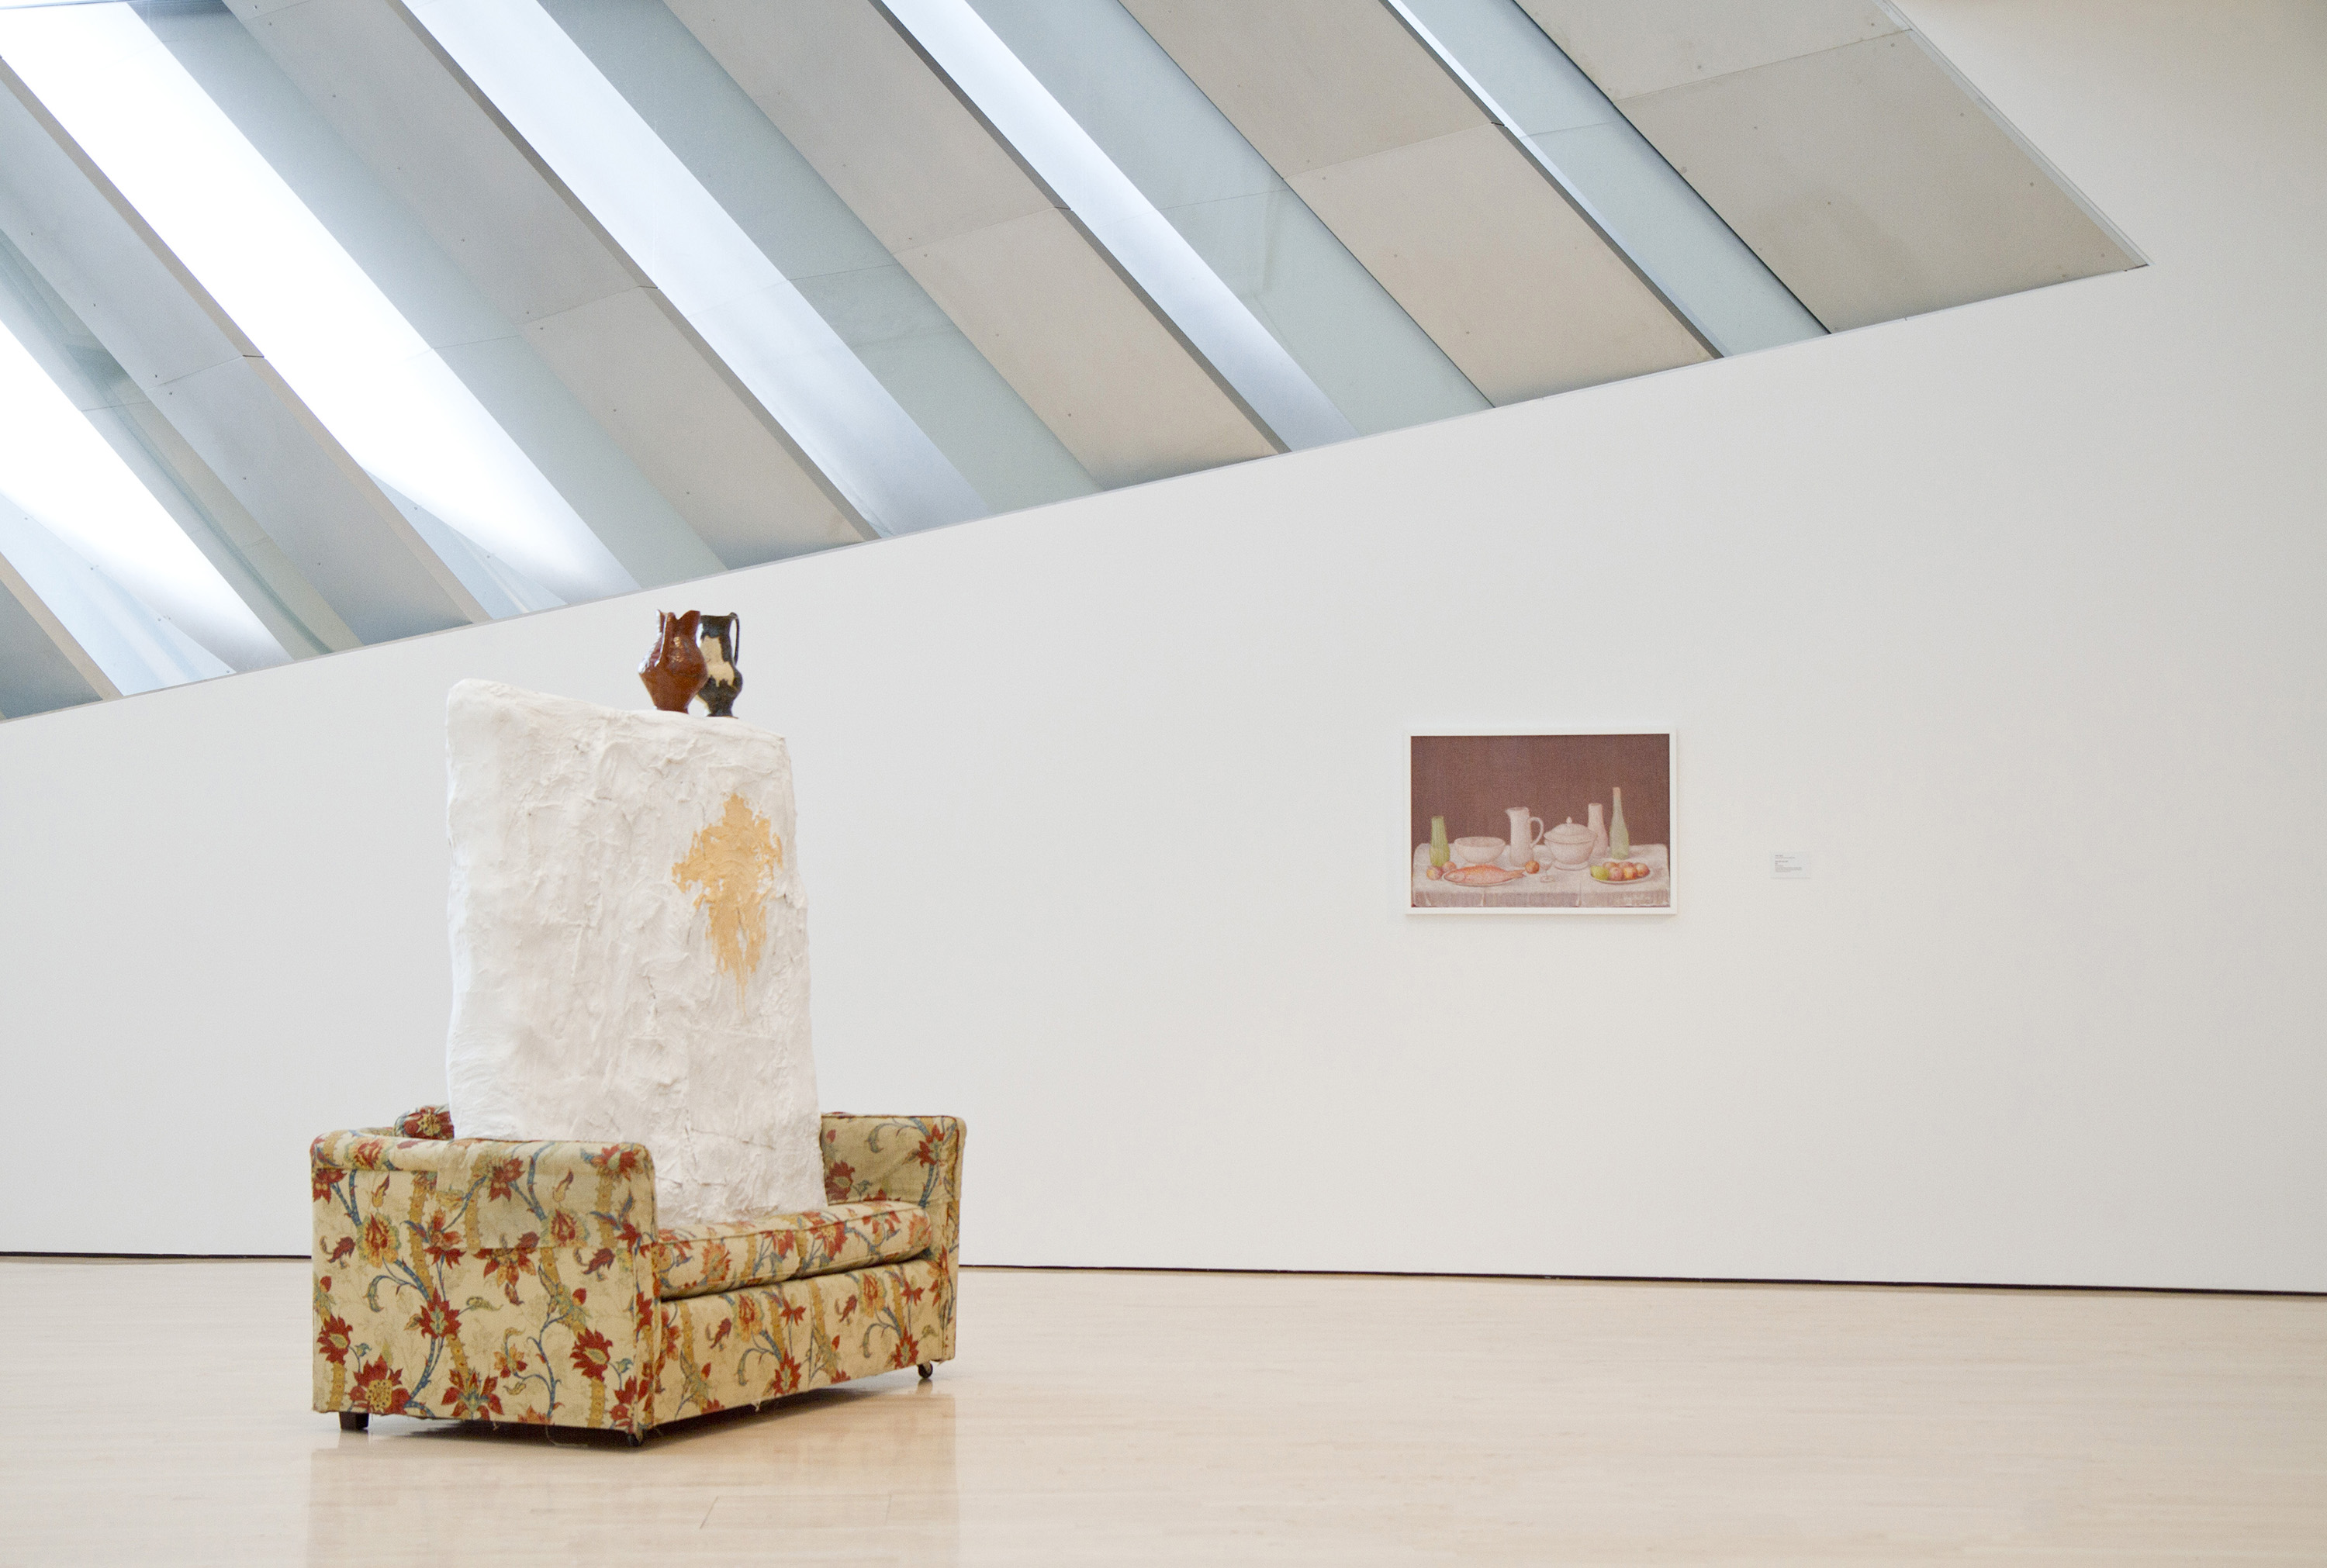 <i>The Genres: Still Life featuring Jessica Jackson Hutchins</i>, installation view at the Eli and Edythe Broad Art Museum at MSU, 2013. Photo: Eat Pomegranate Photography